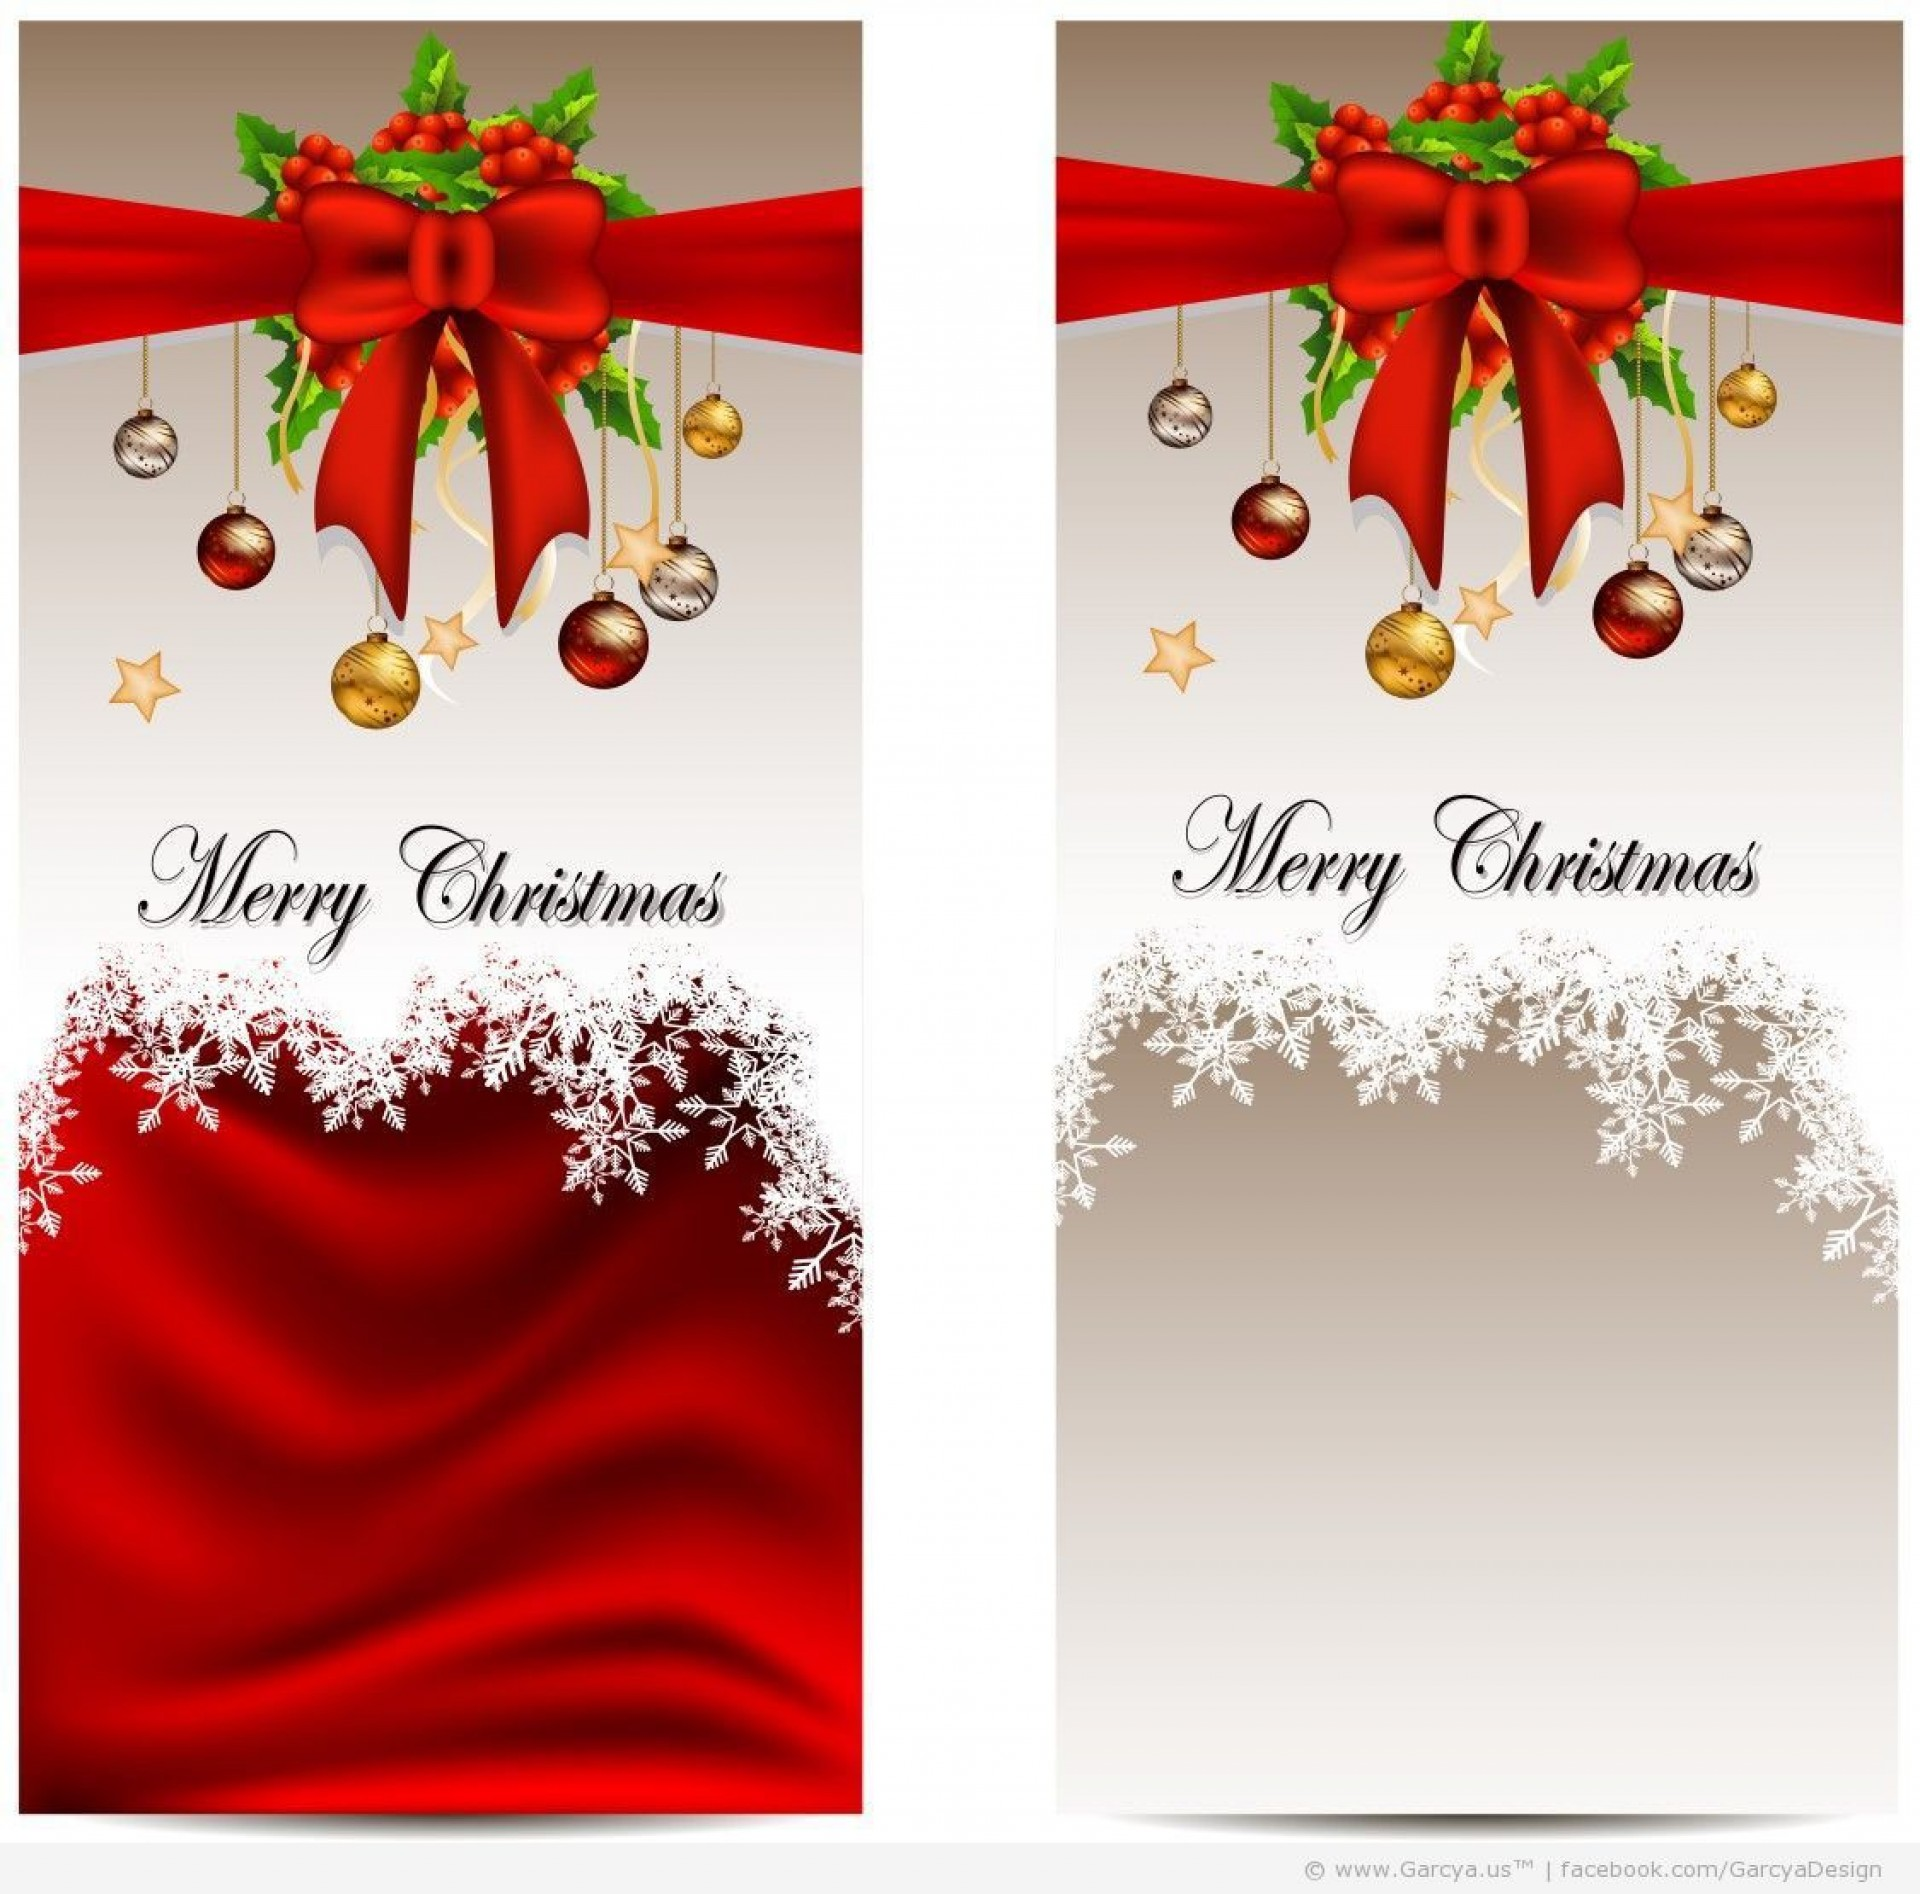 001 Incredible Christma Card Template Free Download High Definition  Downloads Photoshop Photo Editable1920